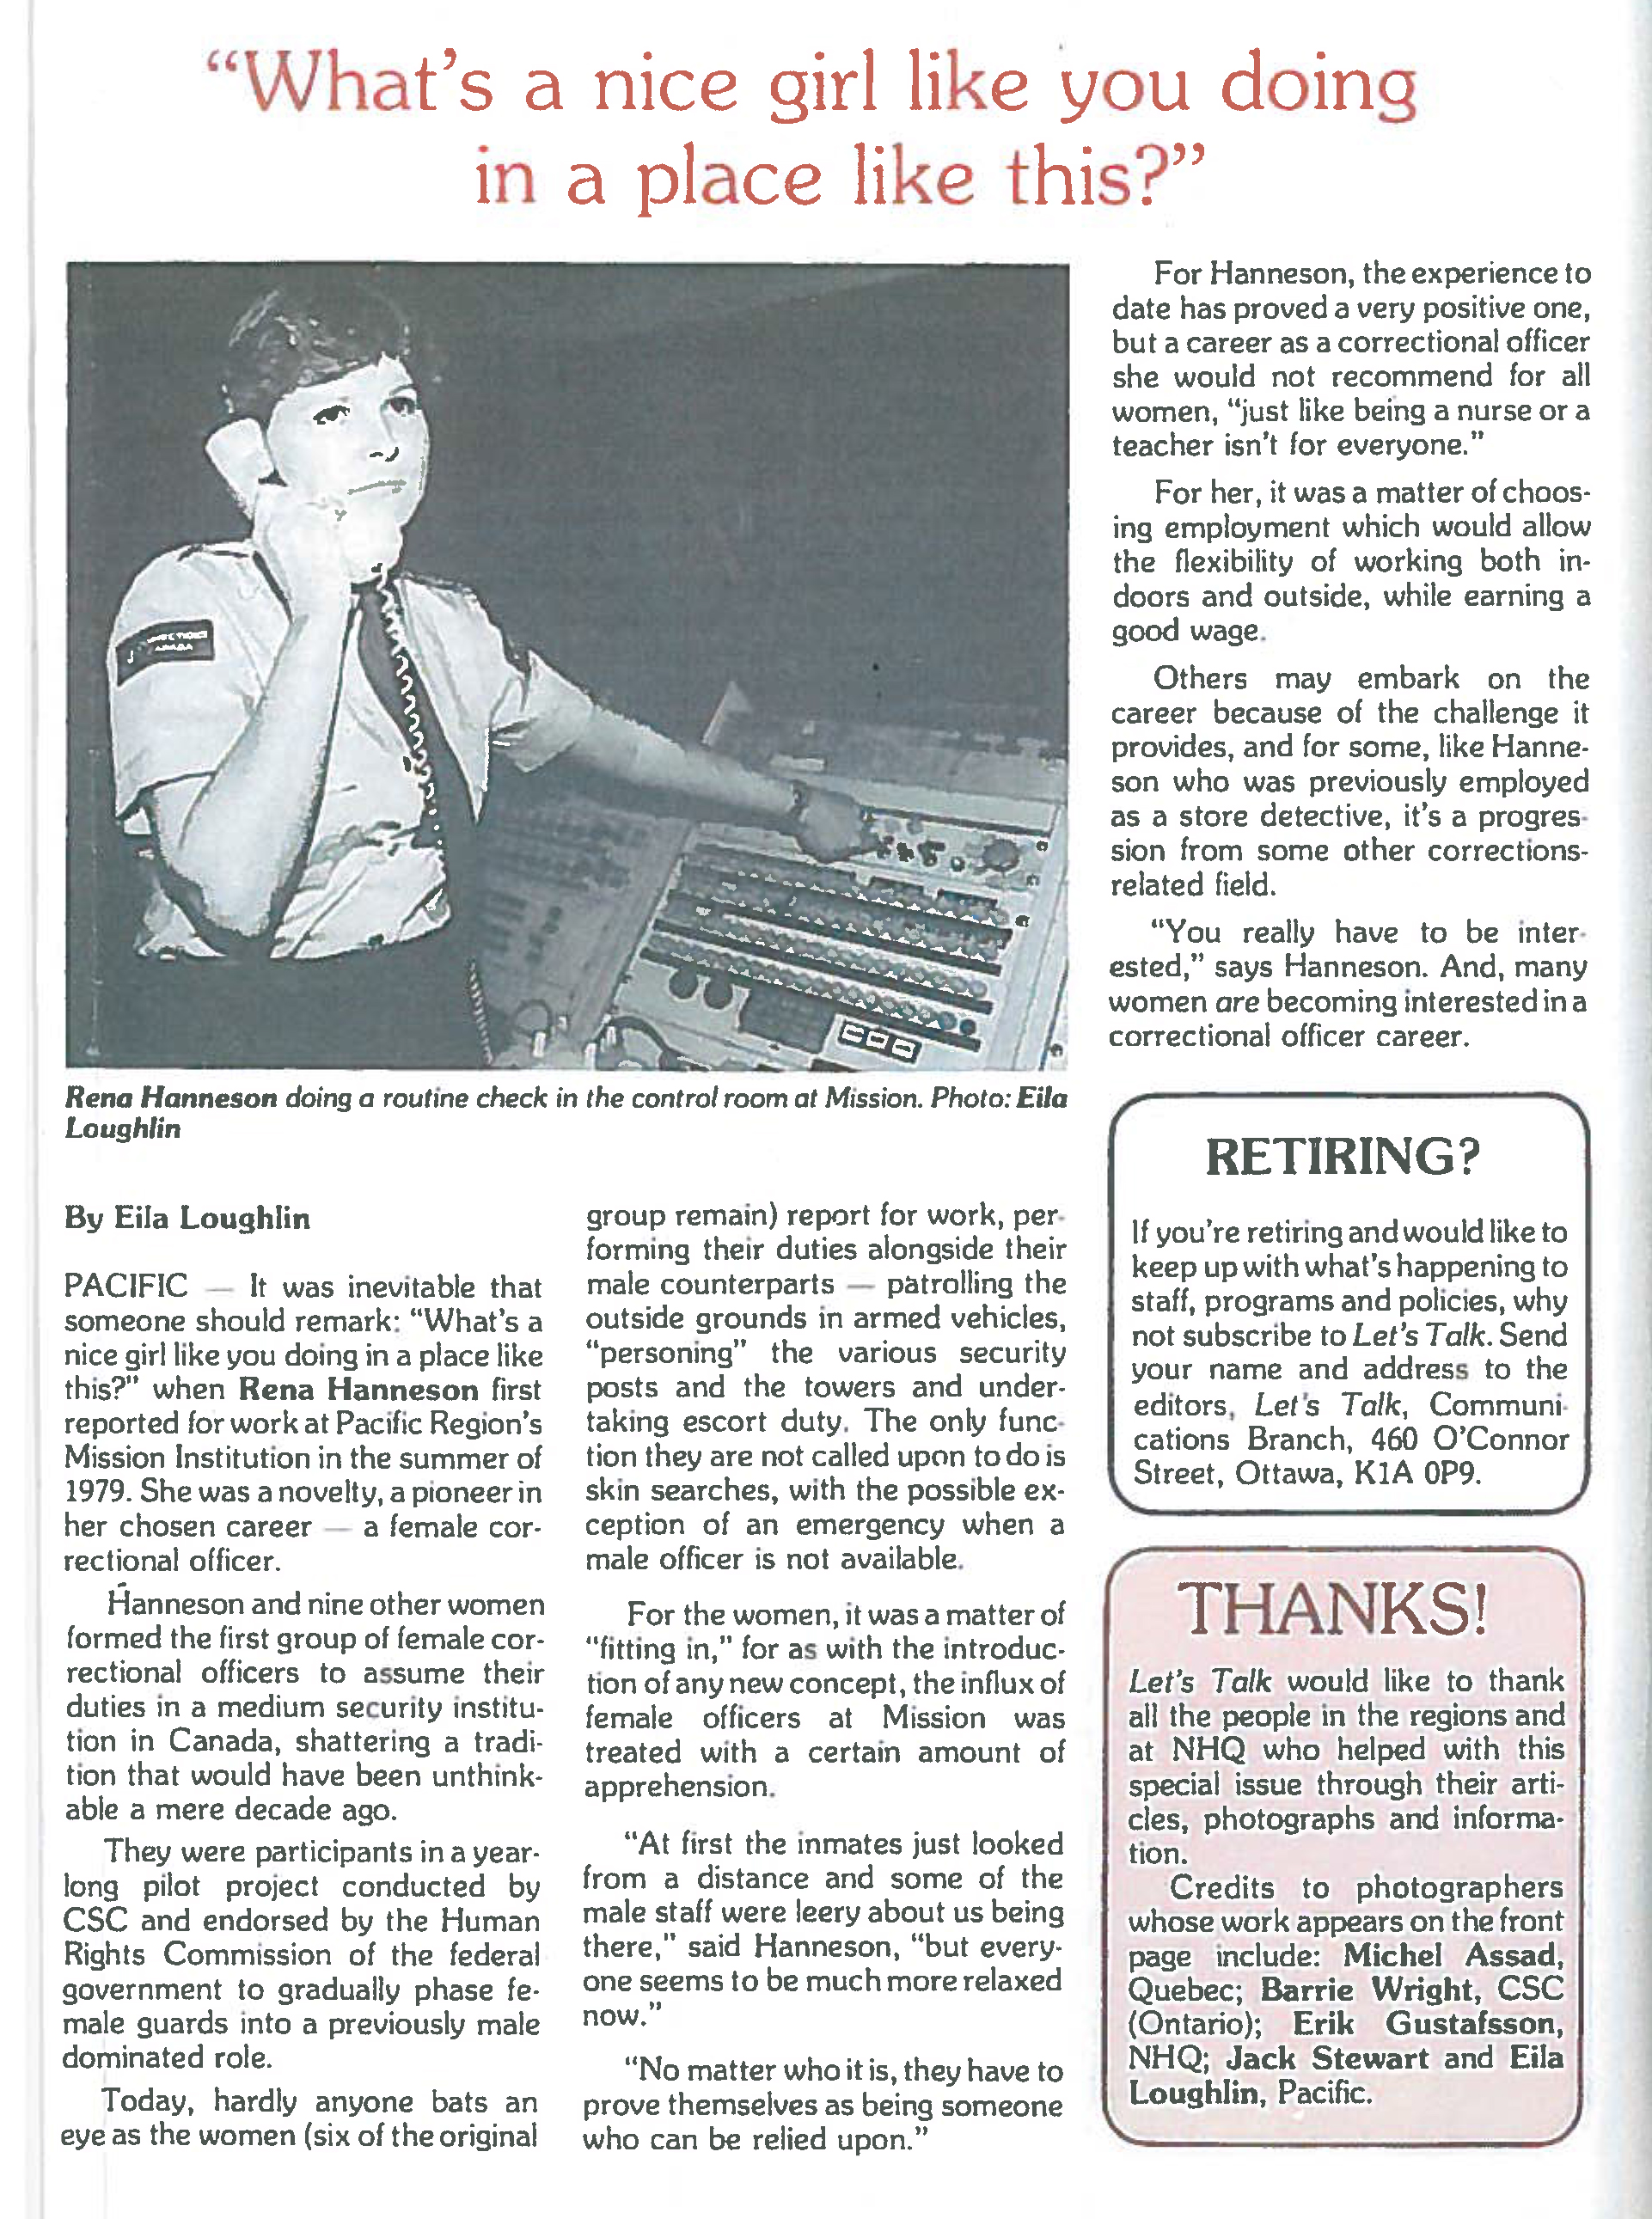 An article about women in corrections - March 1981